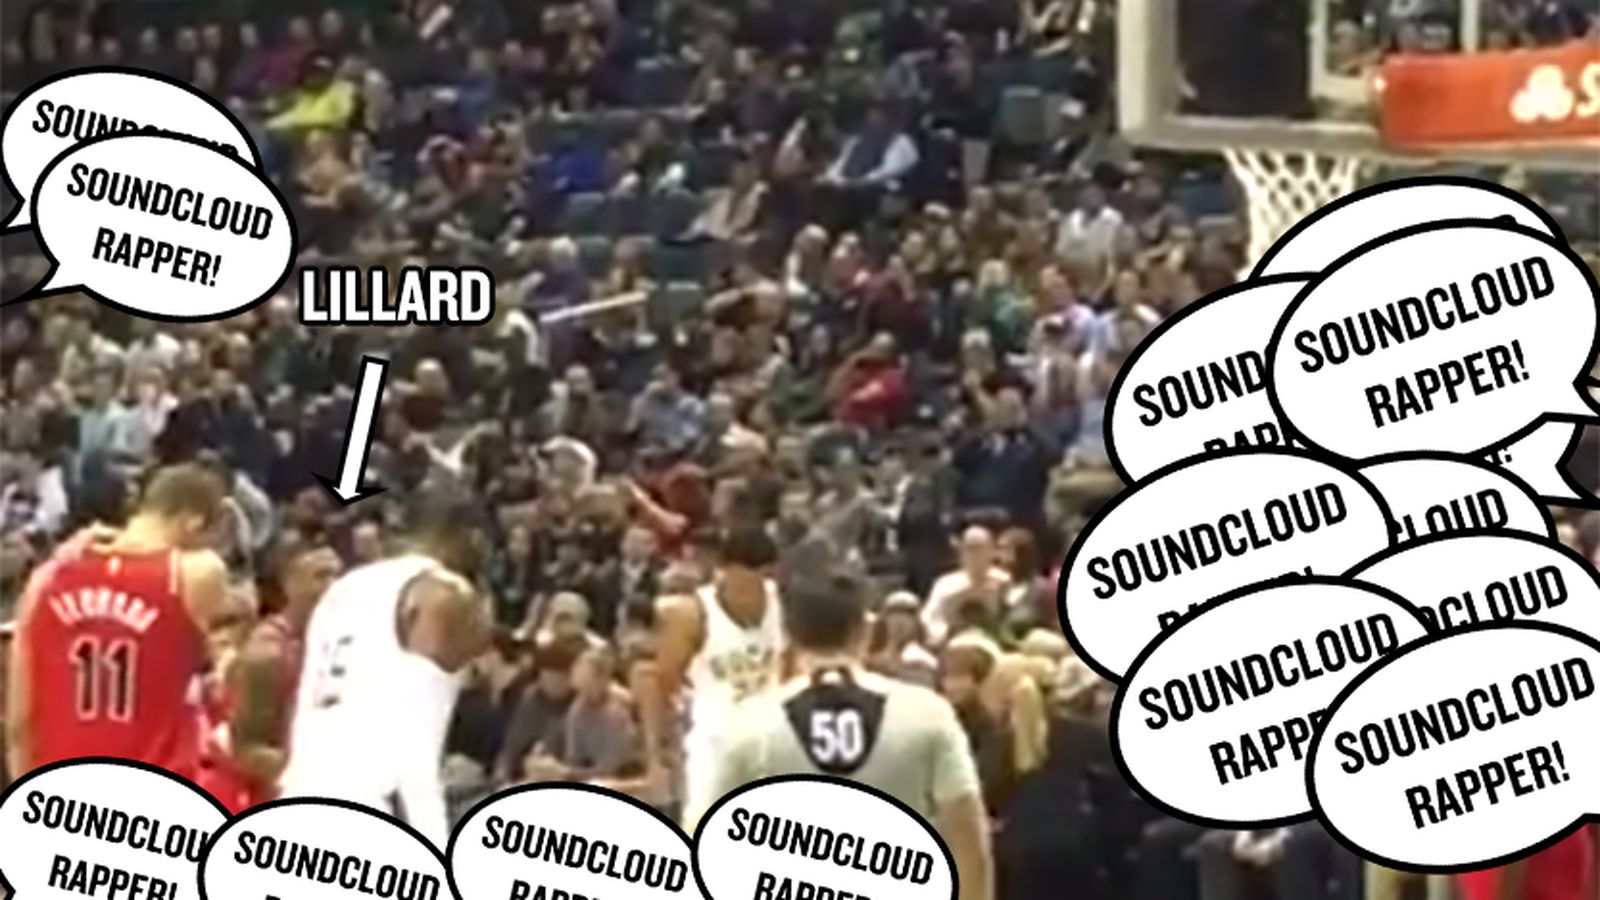 Damian Lillard Taunted By Bucks Fans Chanting Soundcloud